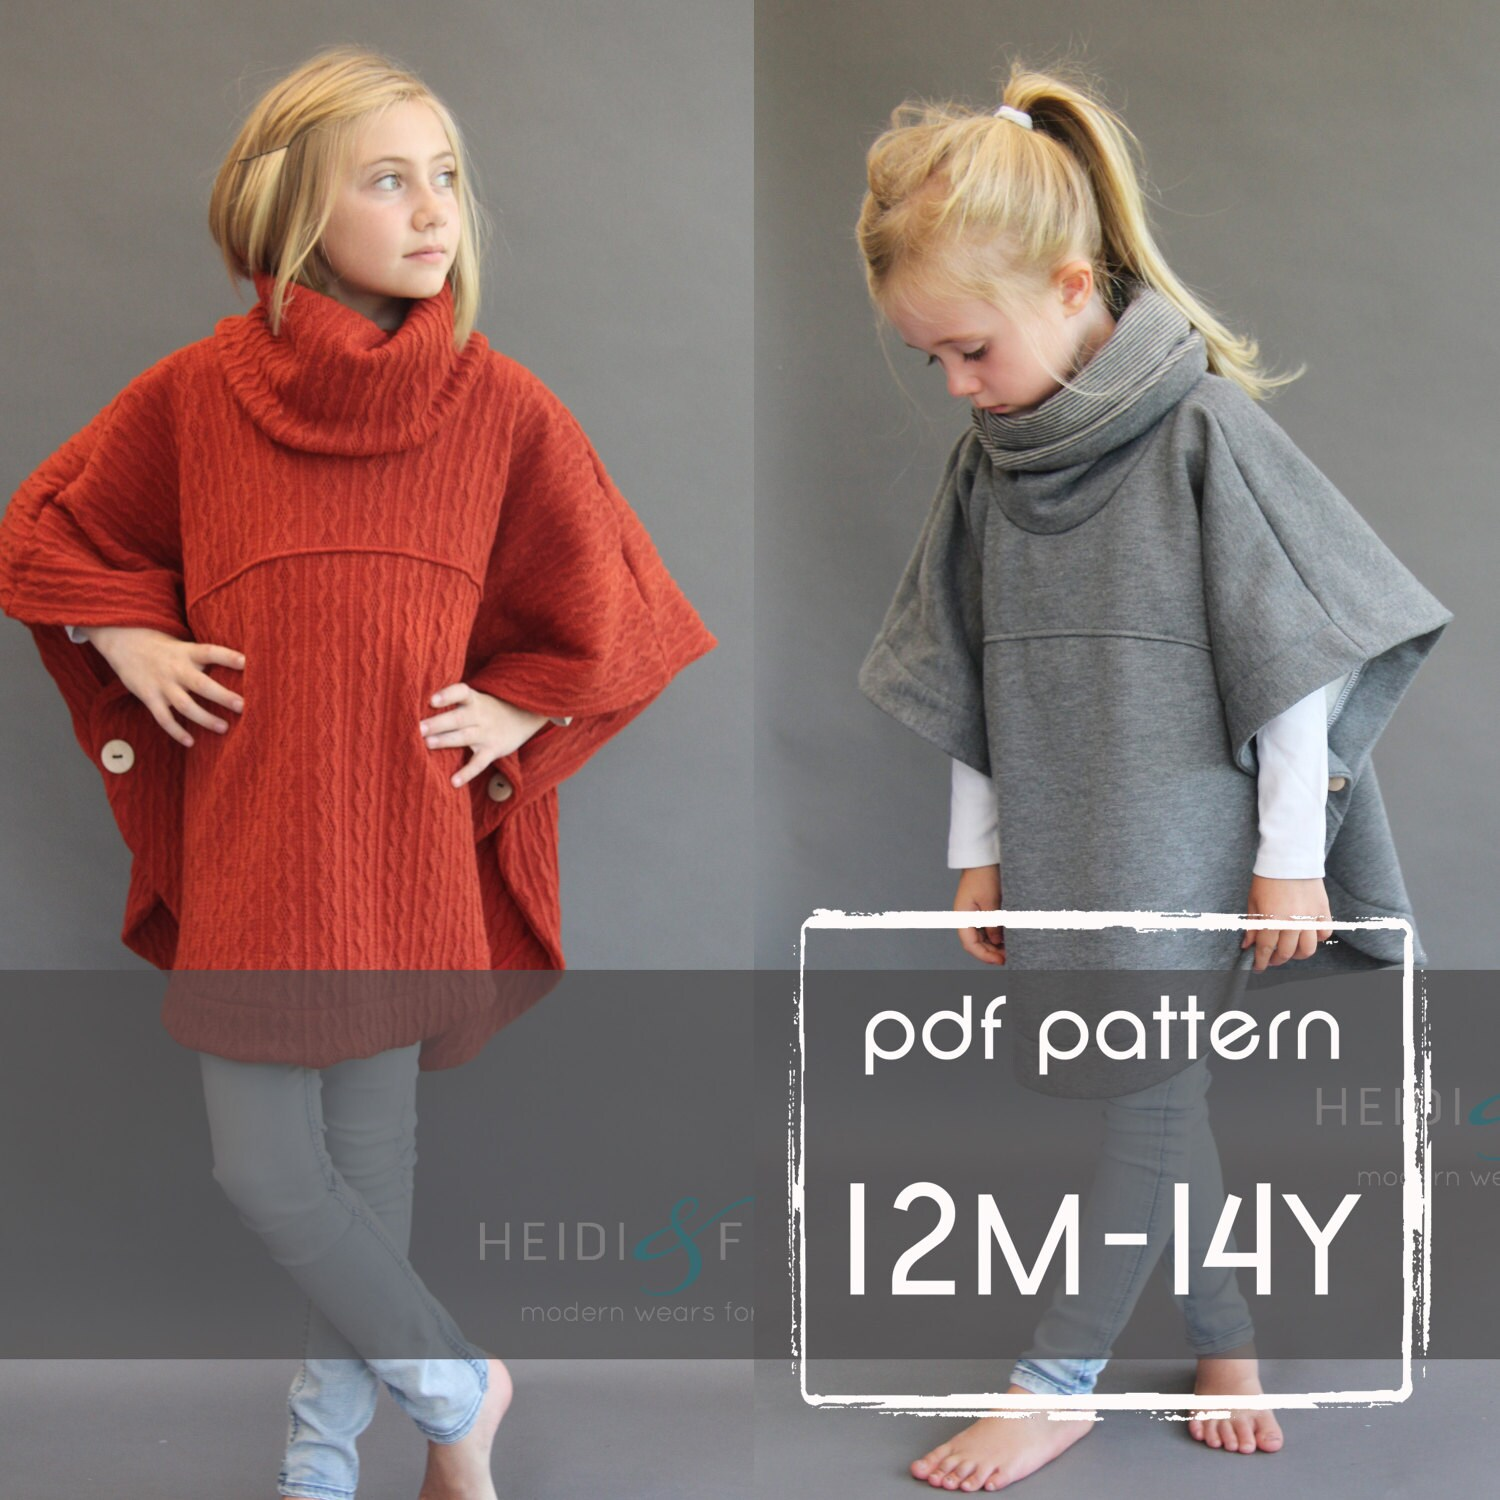 Veritas cape poncho pattern and tutorial 12m-14y holiday